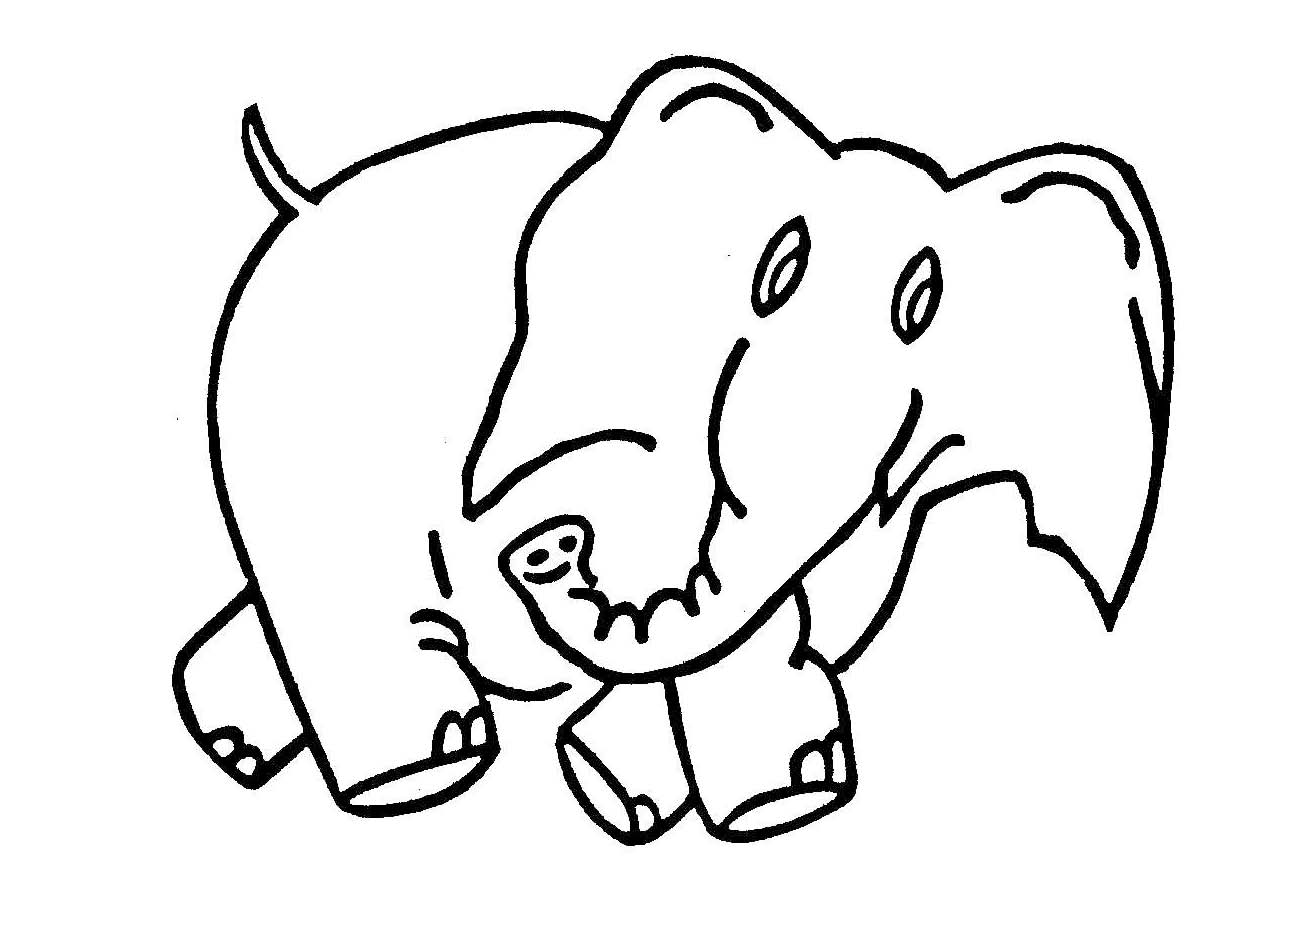 Elephant Drawings For Kids